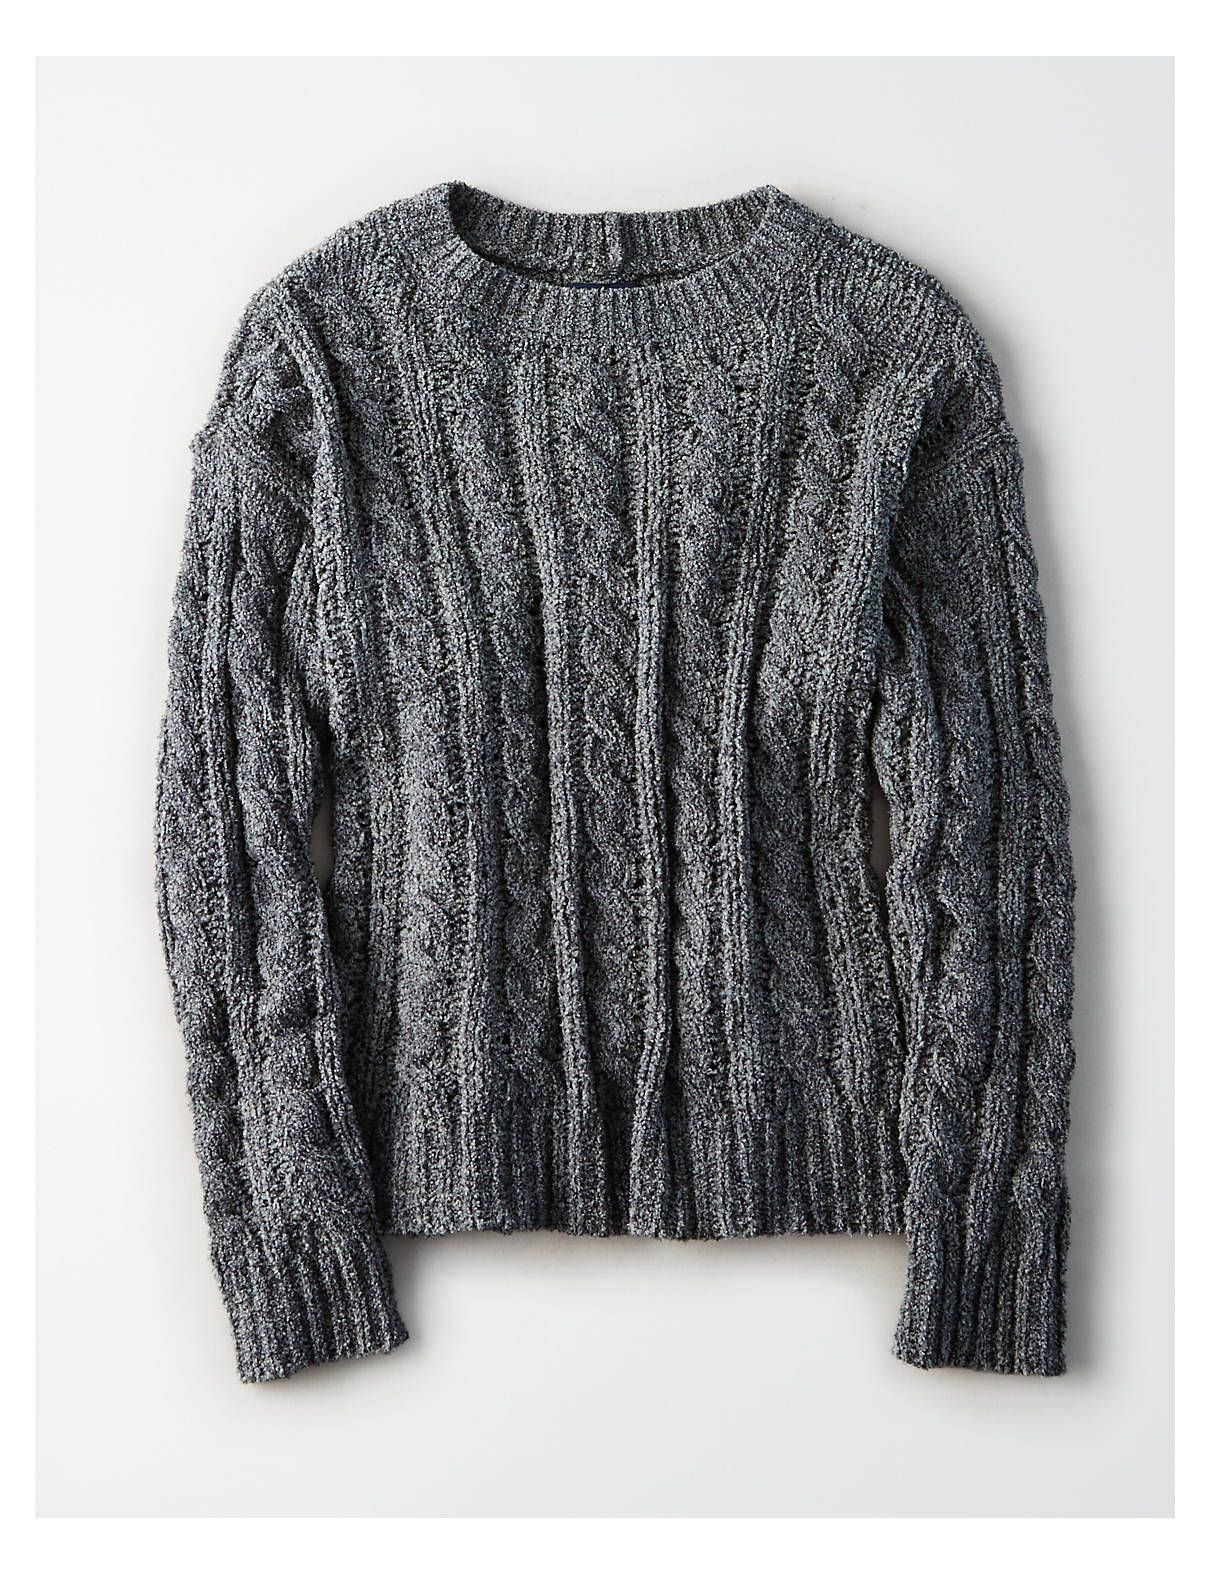 e18f2d29cdc223 AE Impossibly Soft Cable Knit Sweater, Gray | Aerie for American Eagle